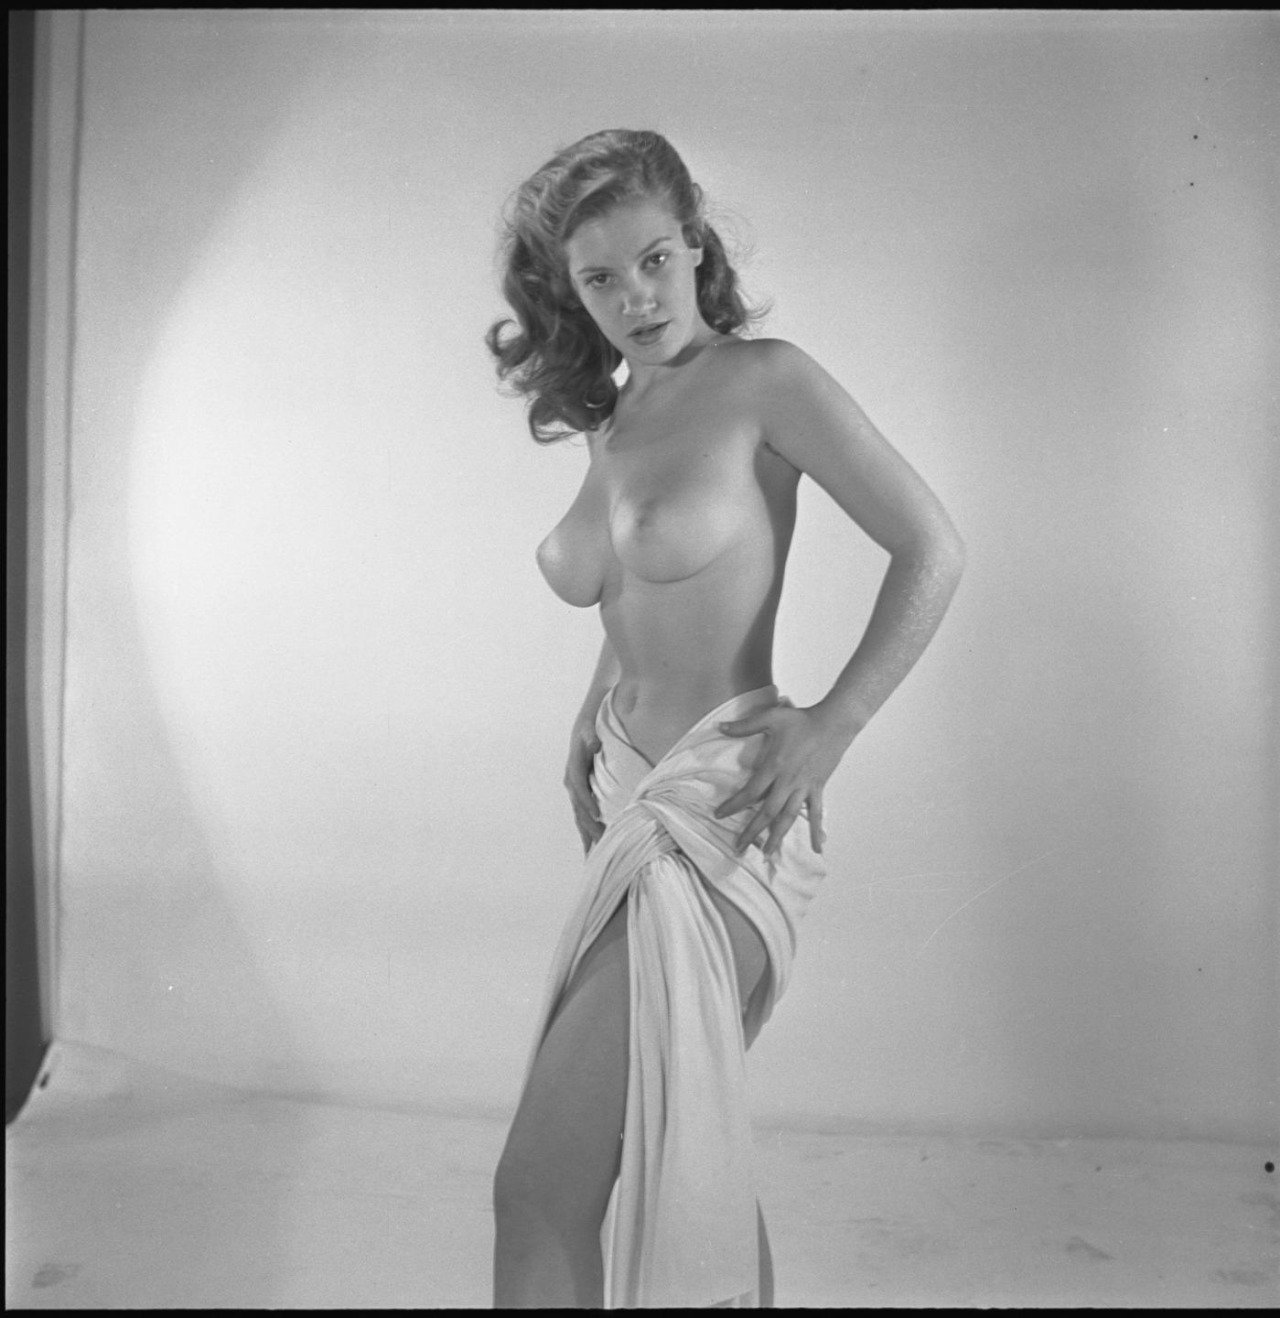 Peter Basch - Dee Hess https://t.co/o1Gz5hkpR3